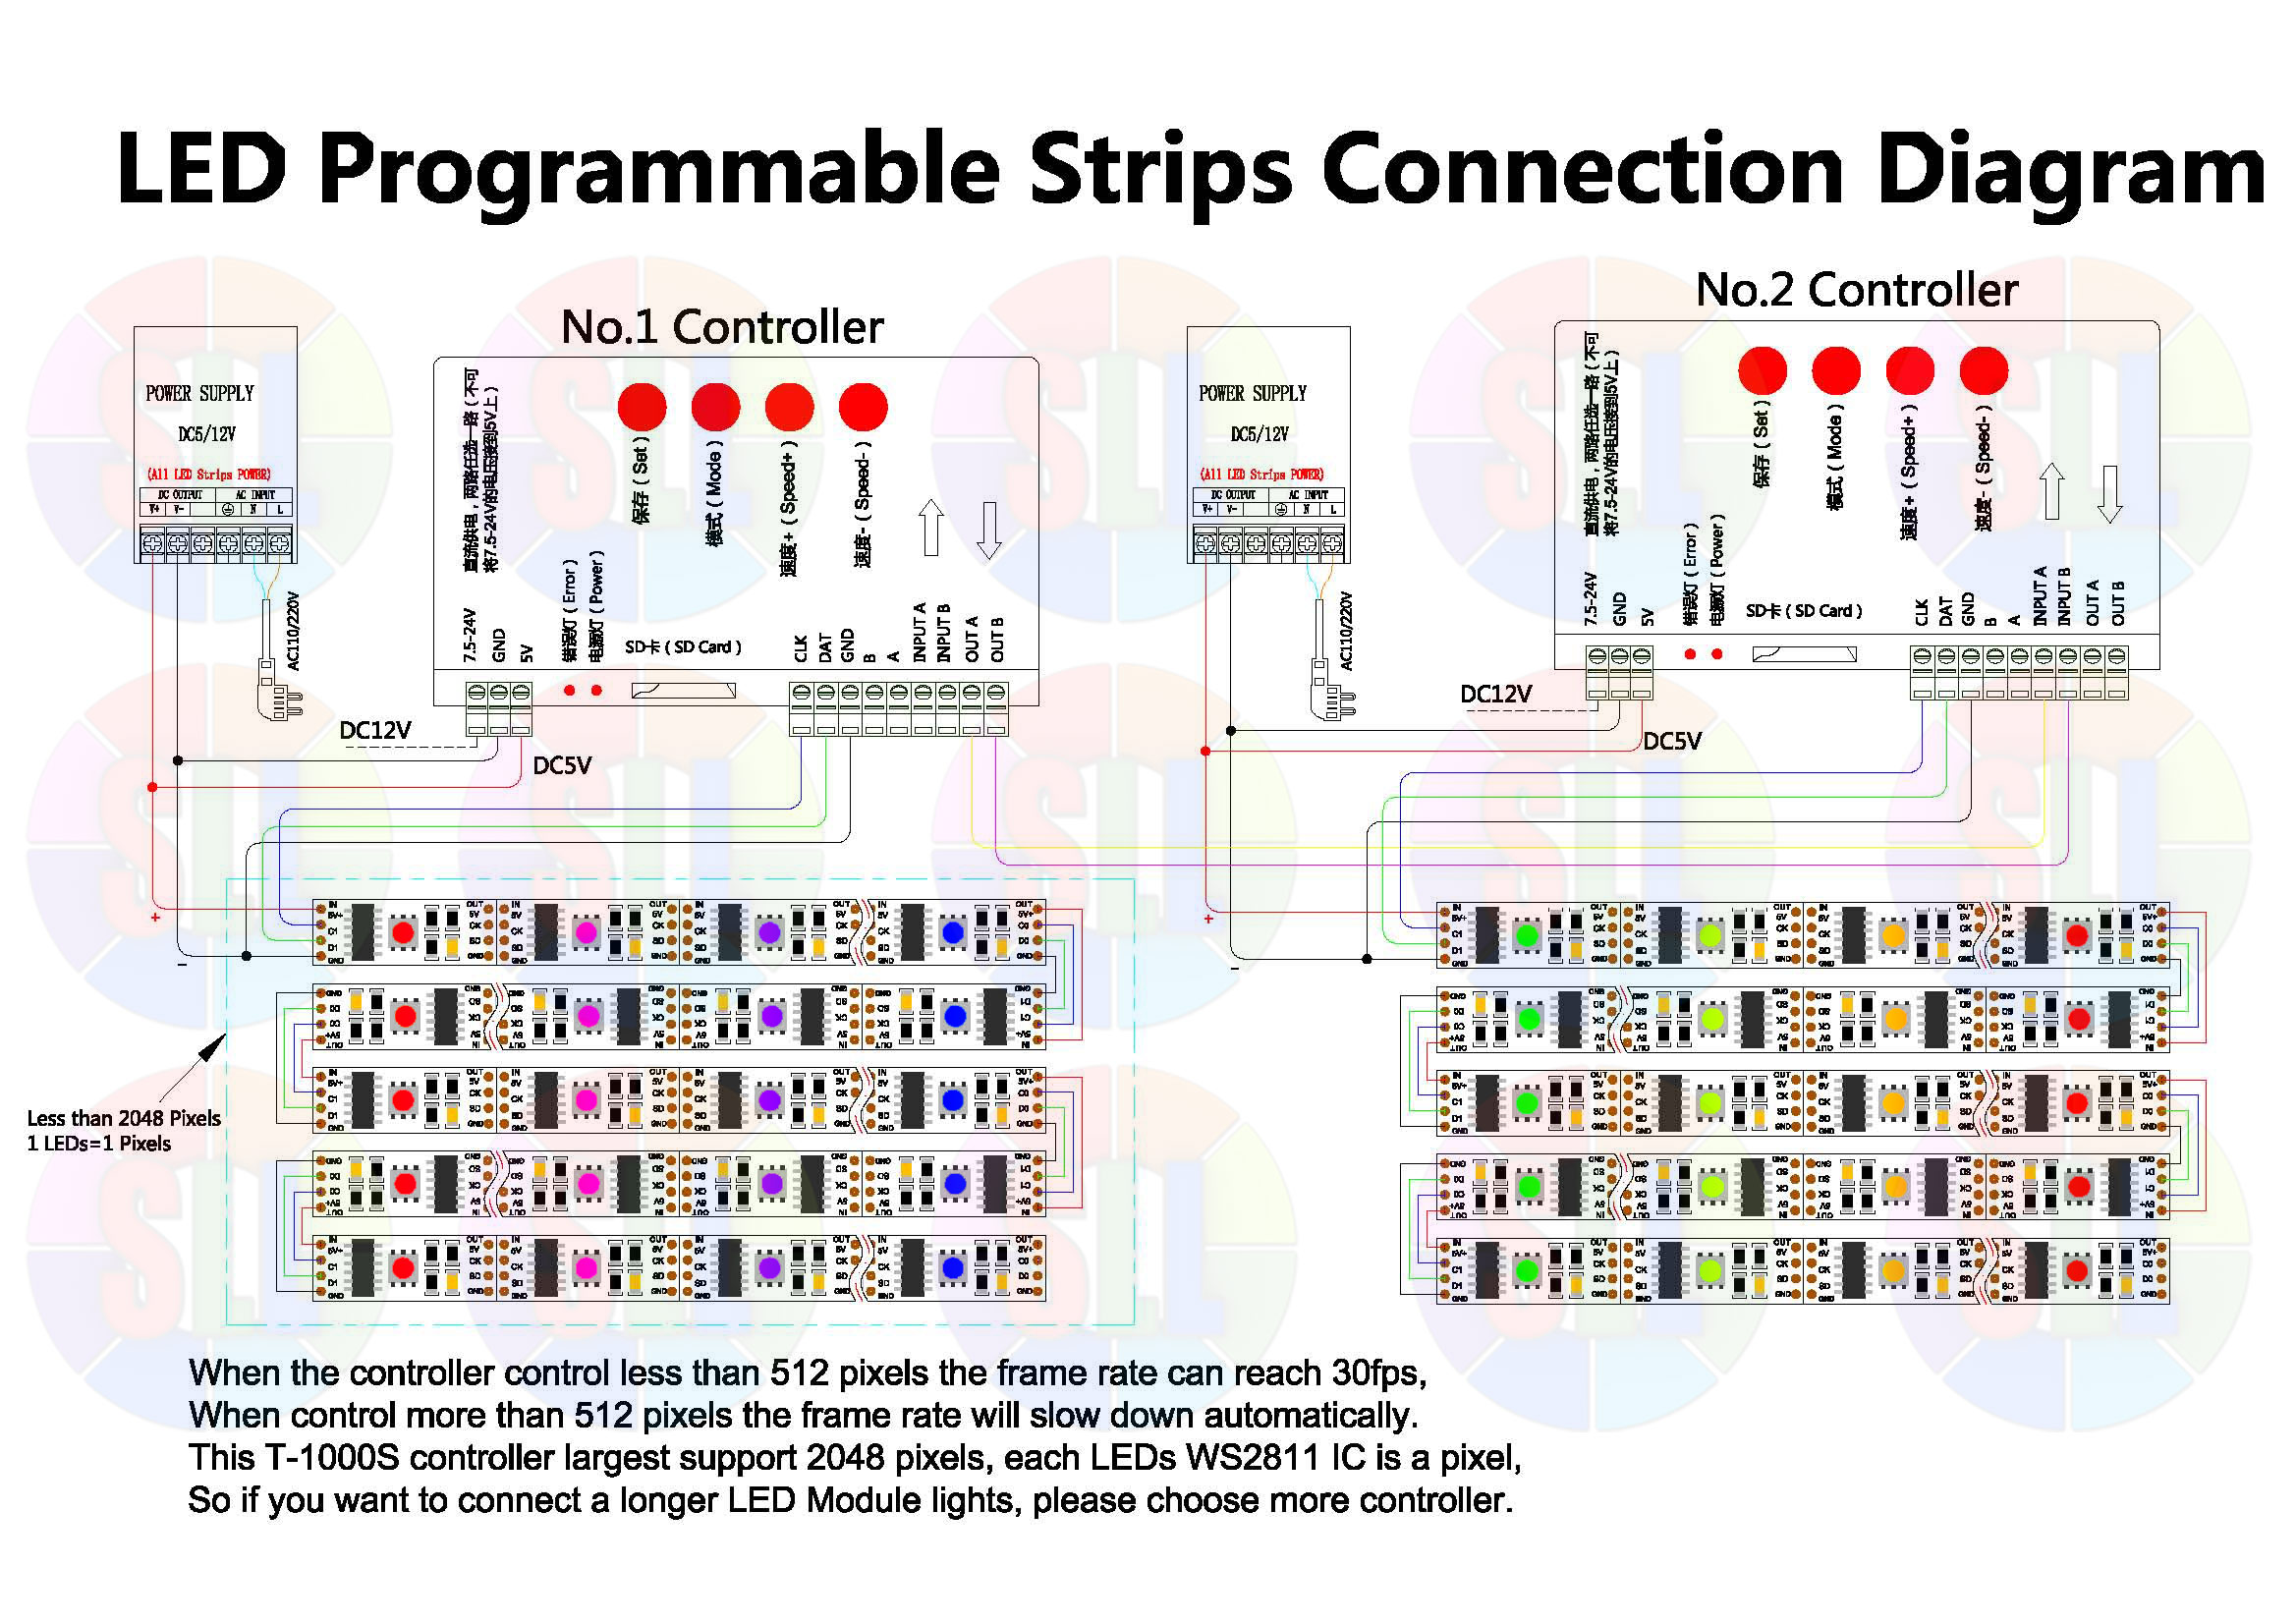 ... programmable controller connection diagram.  create_a_Large_flexible_led_strip_light_Installation.jpg